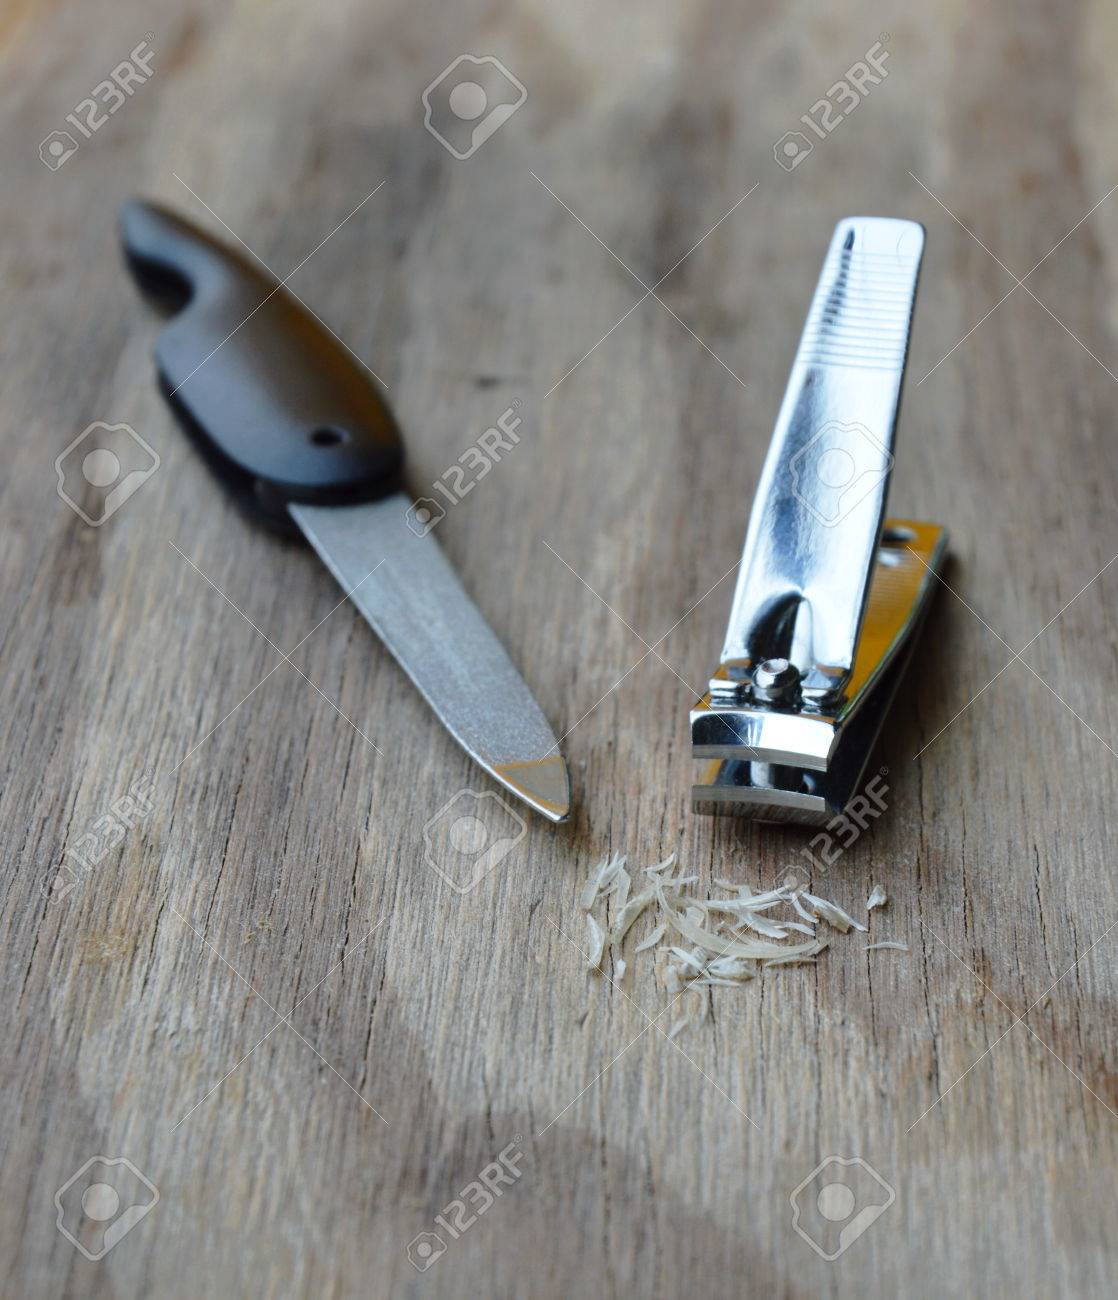 Nail Clipper And Emery File On Wooden Board Stock Photo, Picture And ...